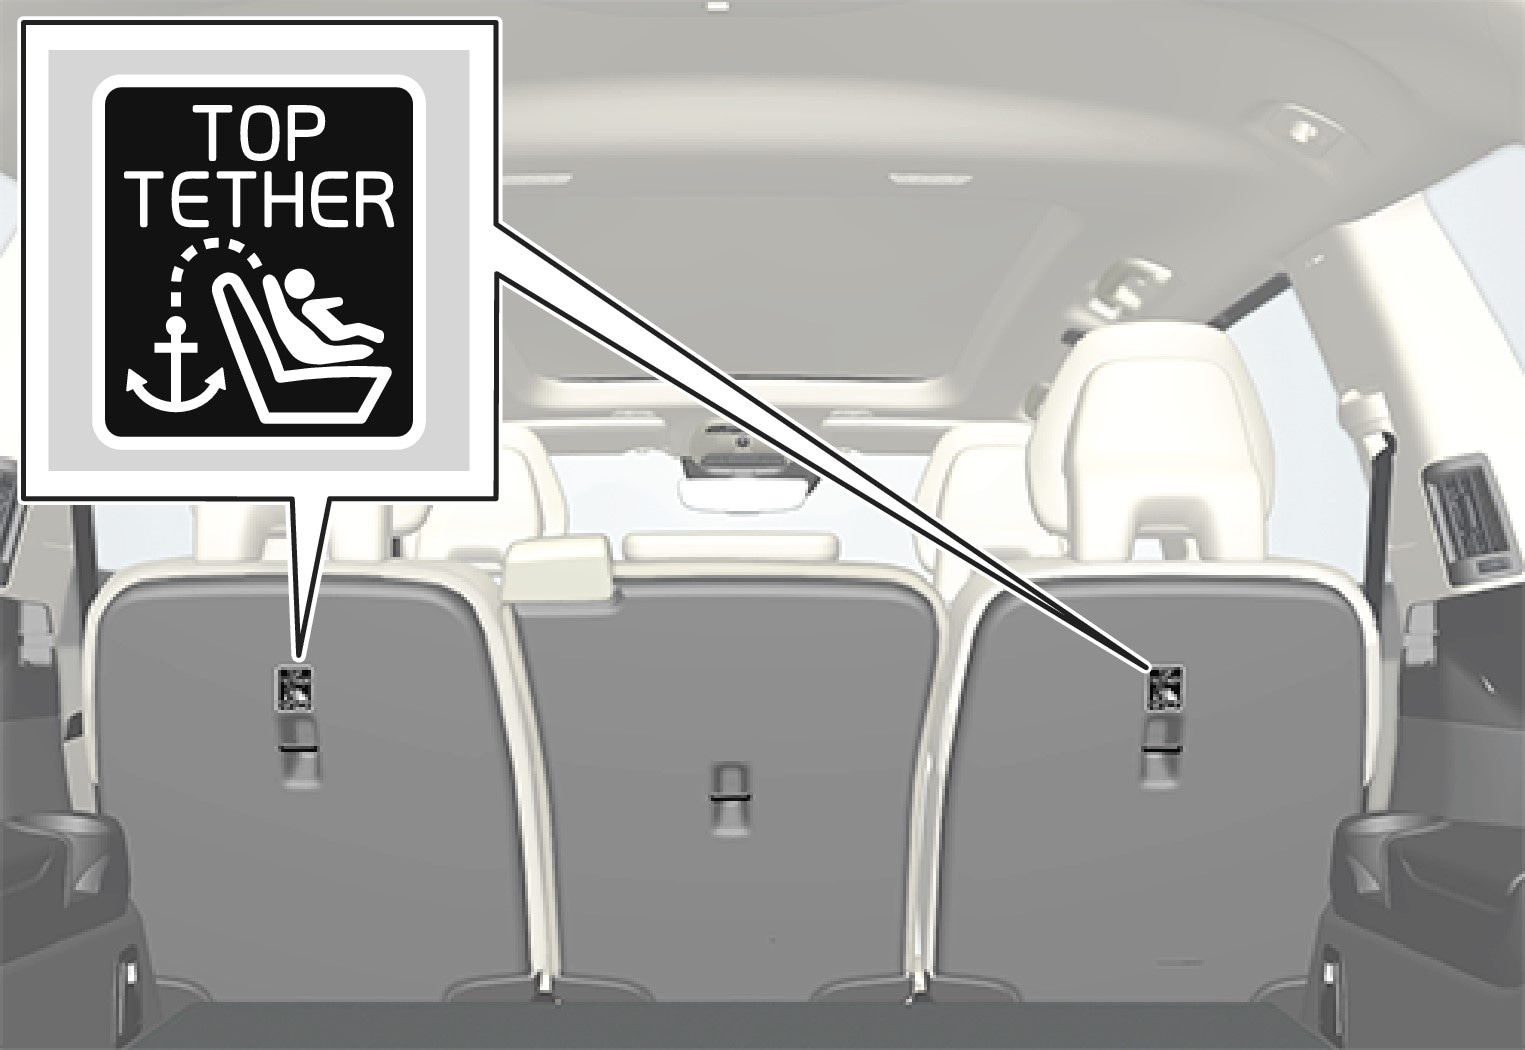 P5-1507–Safety–Top tether position